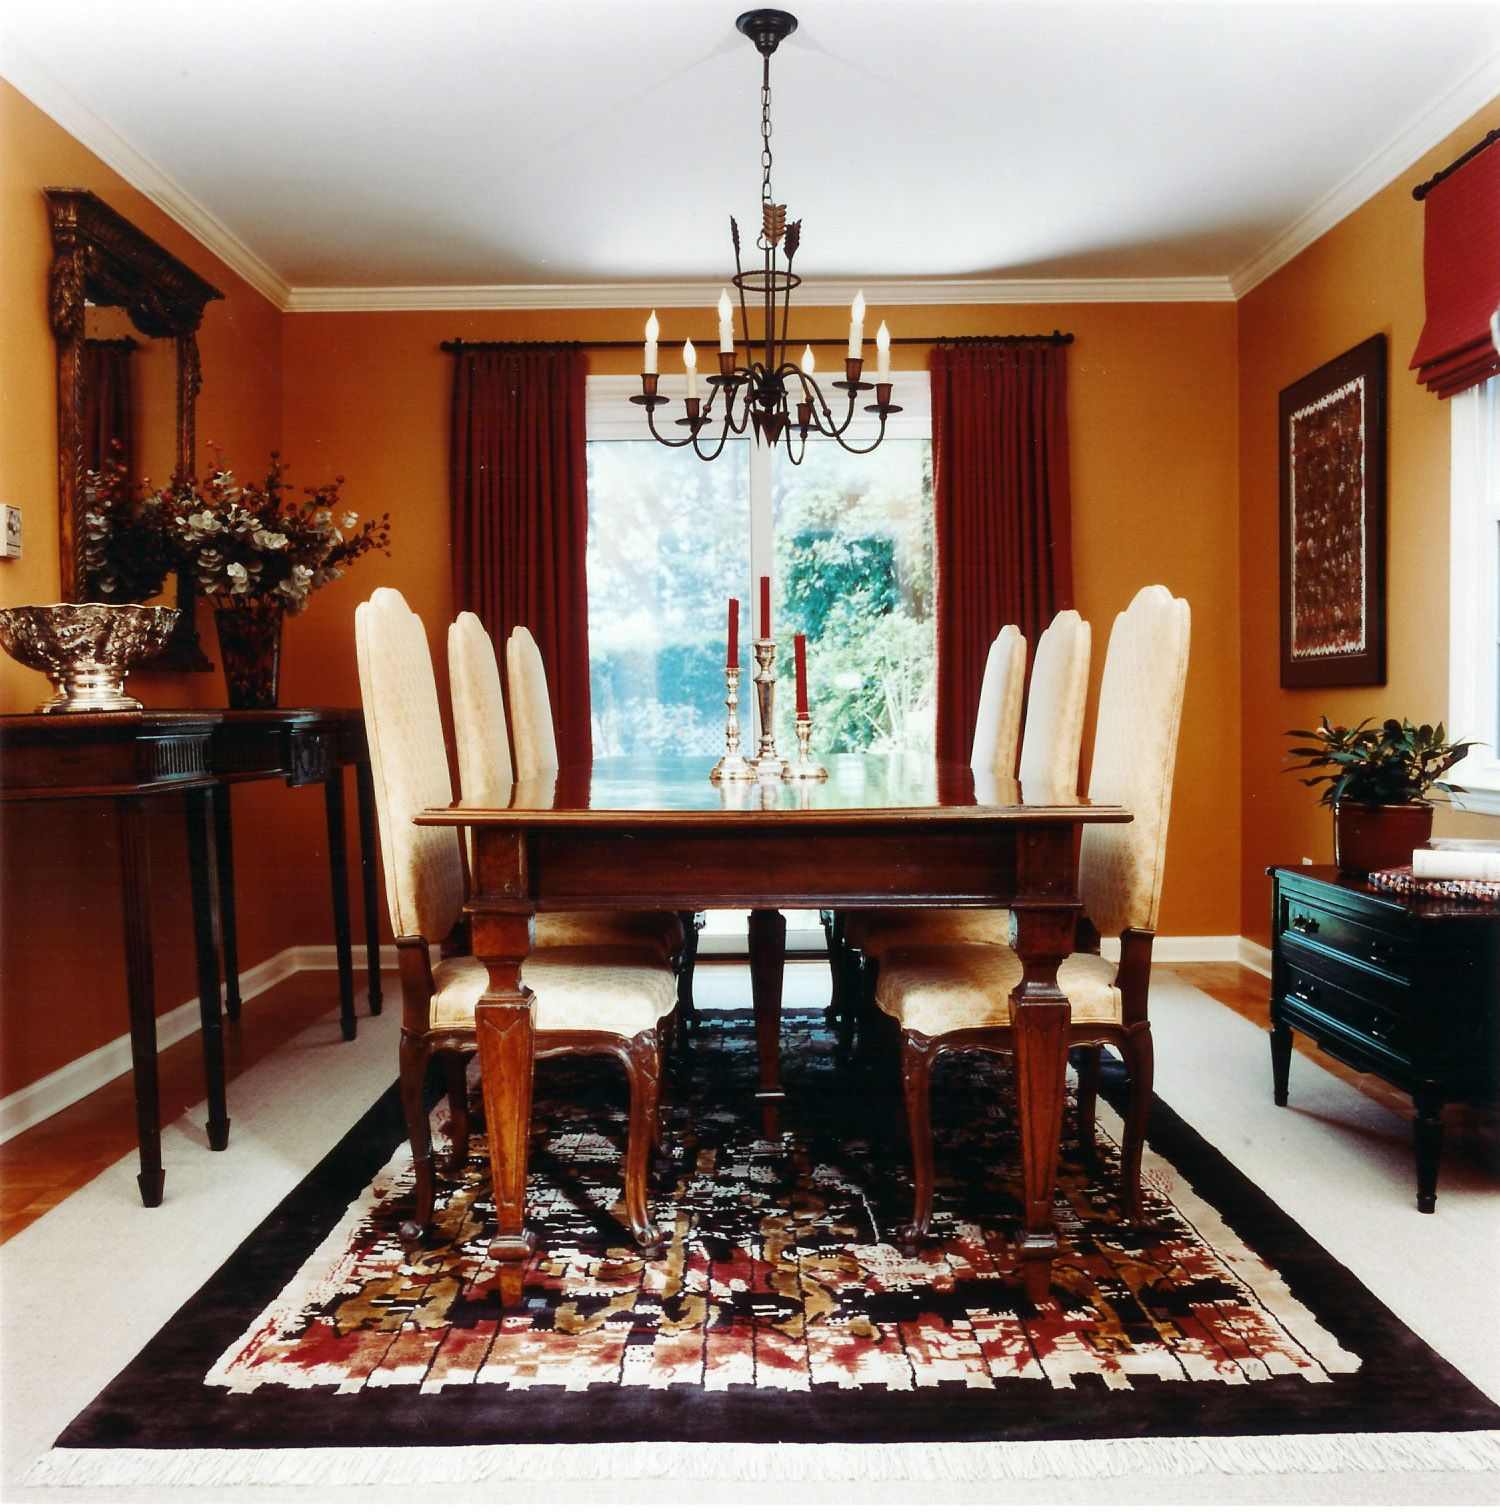 Formal dining room designs are fancy and sophisticated. Opting for this dining  room design adds style and elegance to your home. The furniture should make  a ...